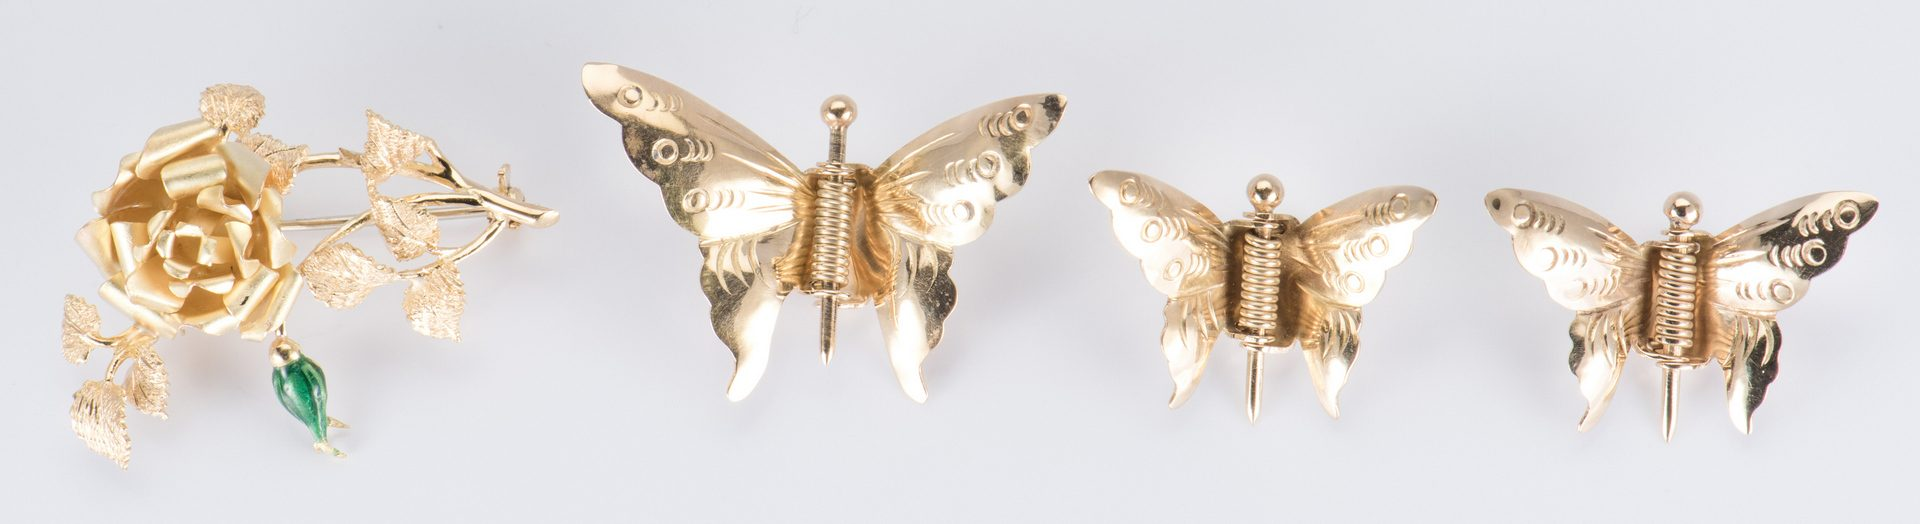 Lot 715: 4 Gold Pins incl Butterflies